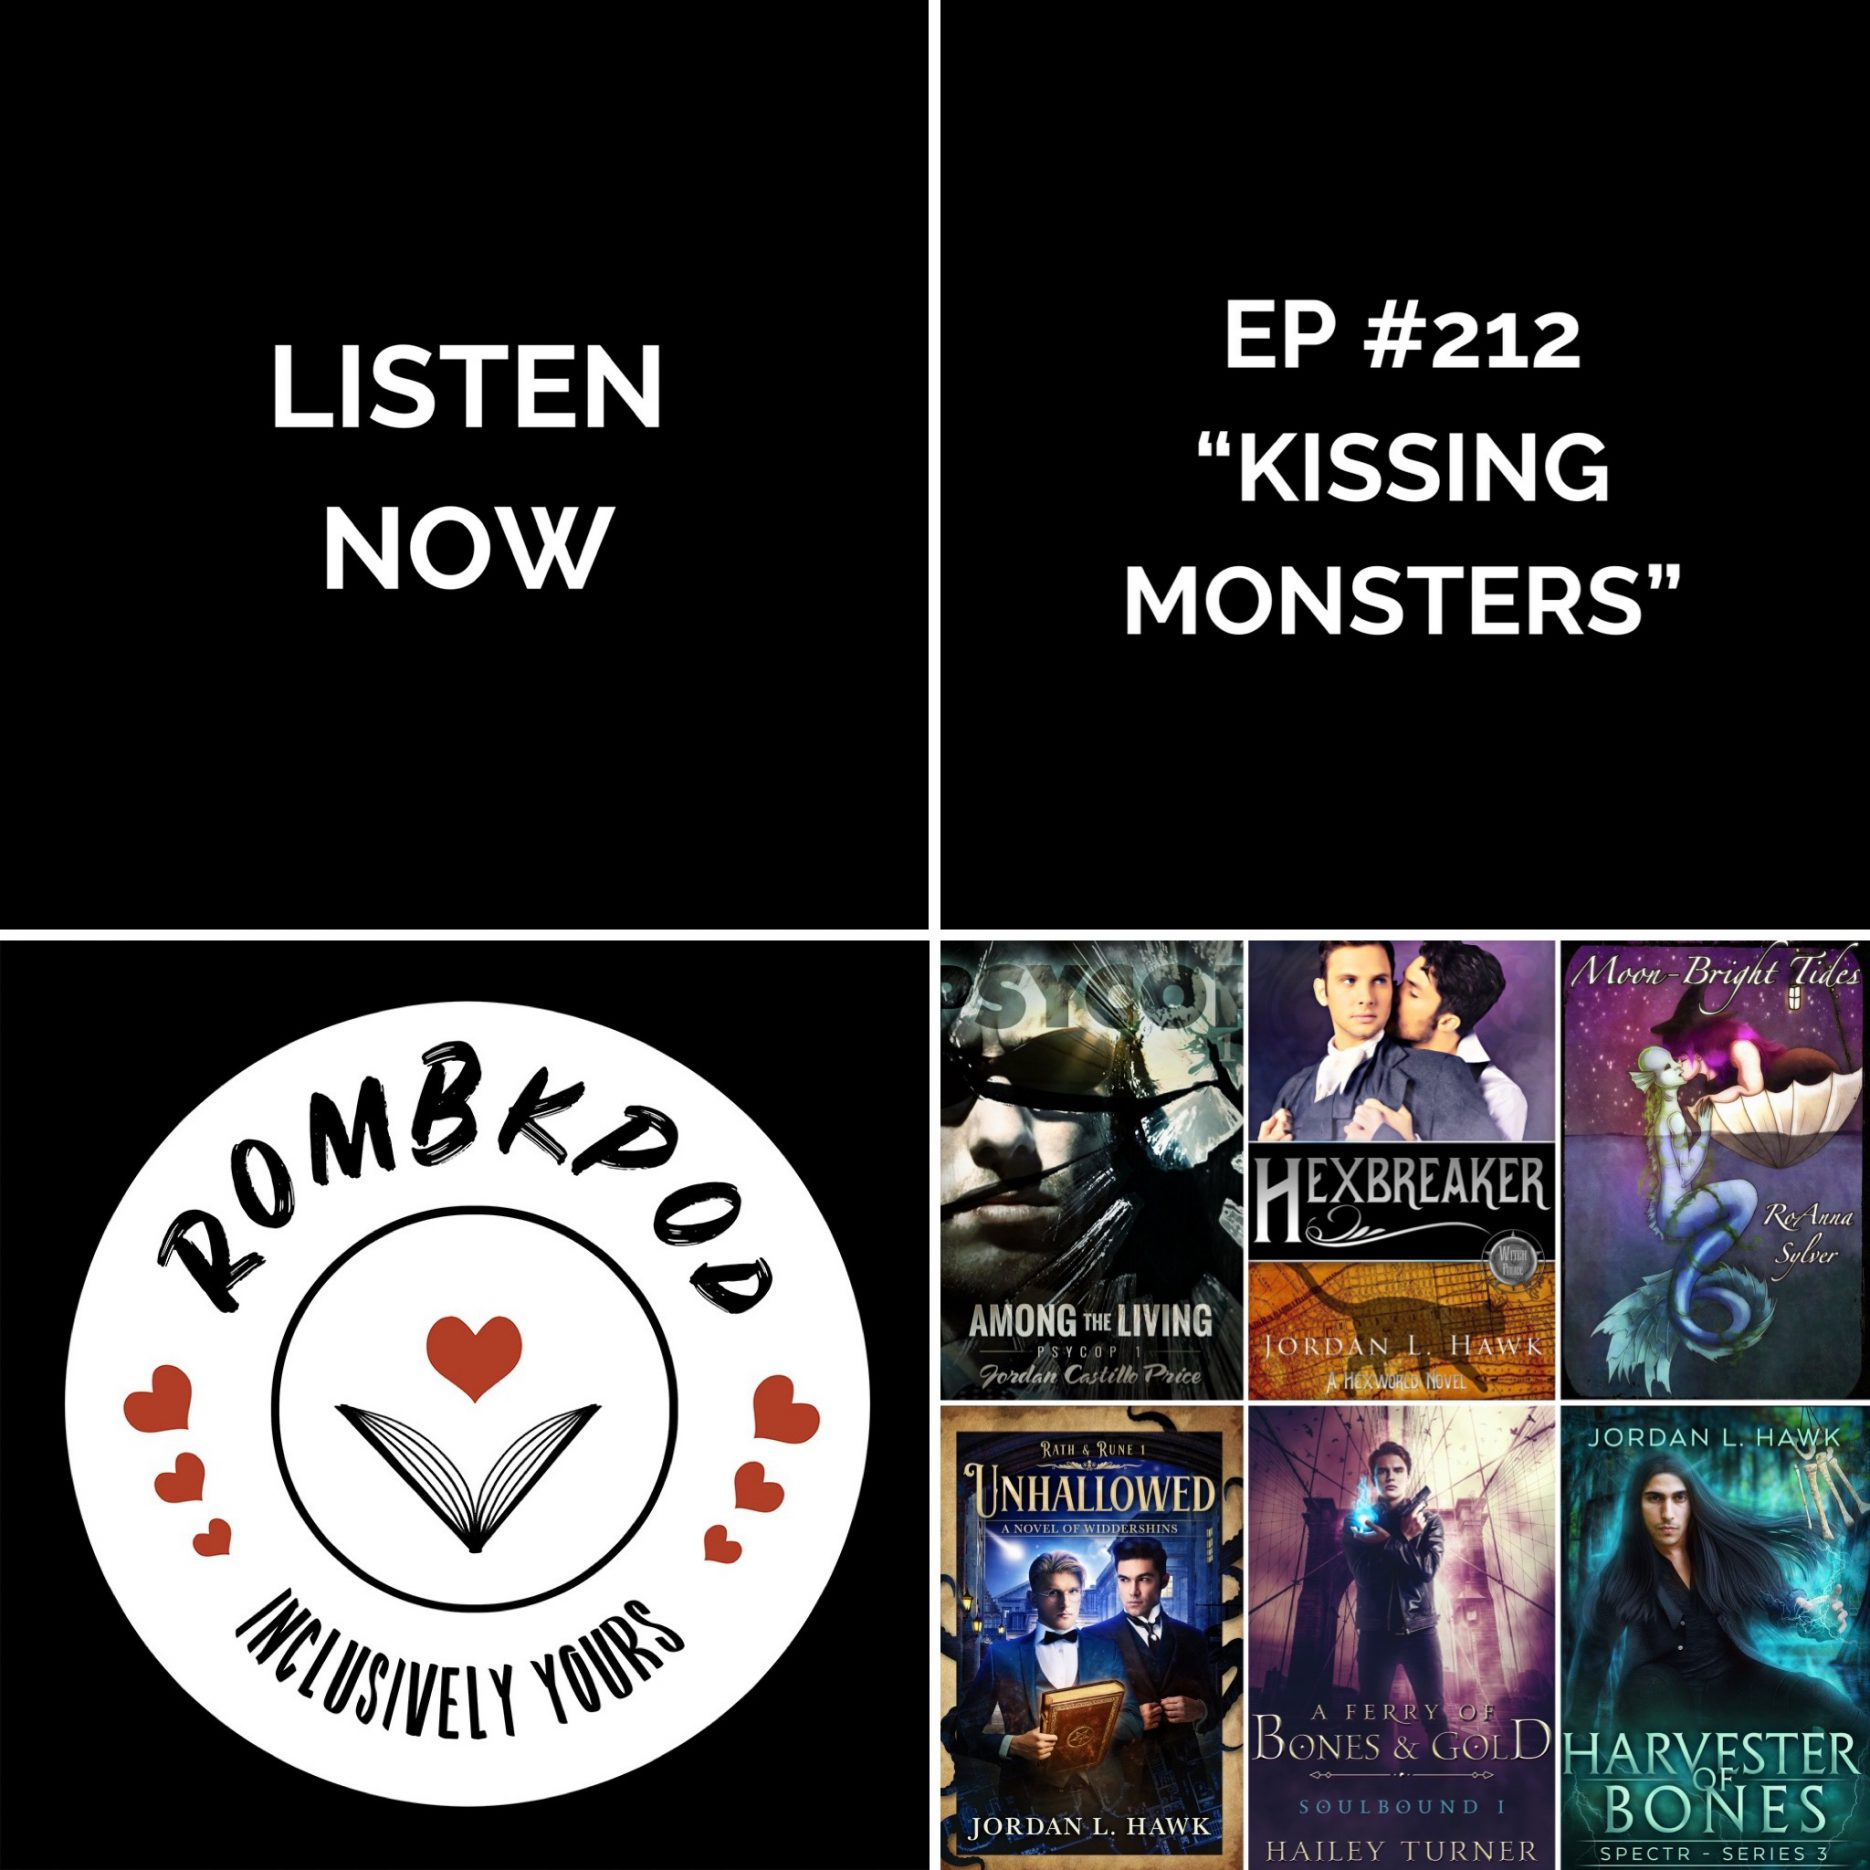 "IMAGE: lower left corner, RomBkPod heart logo; lower right corner, ep #212 book cover collage; IMAGE TEXT: Listen Now, ep #212 ""Kissing Monsters"""